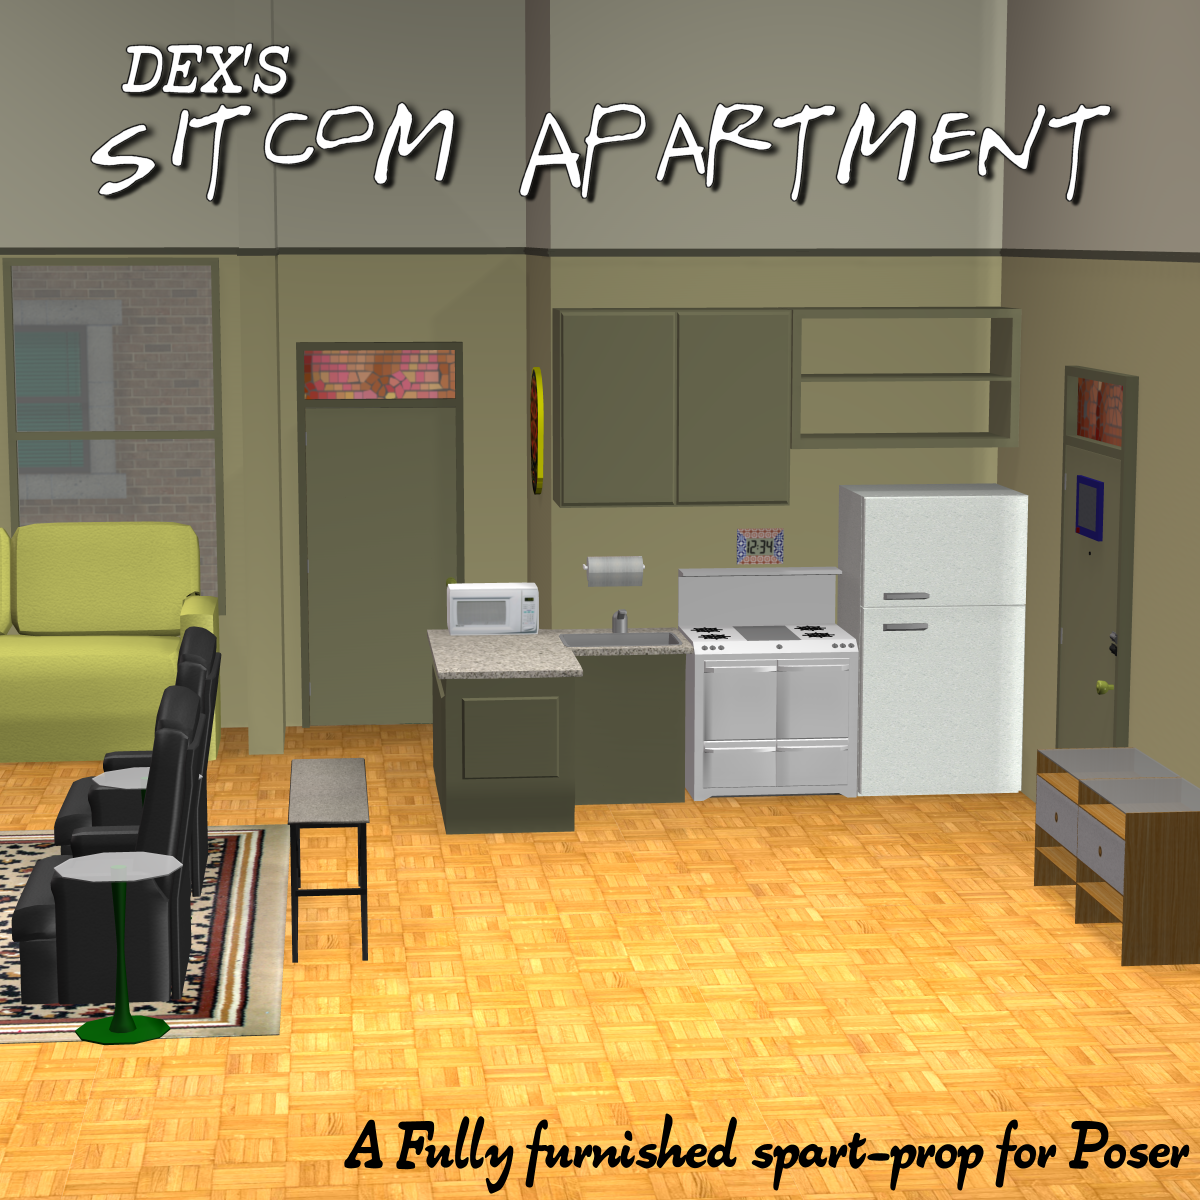 Sitcom Apartment 01